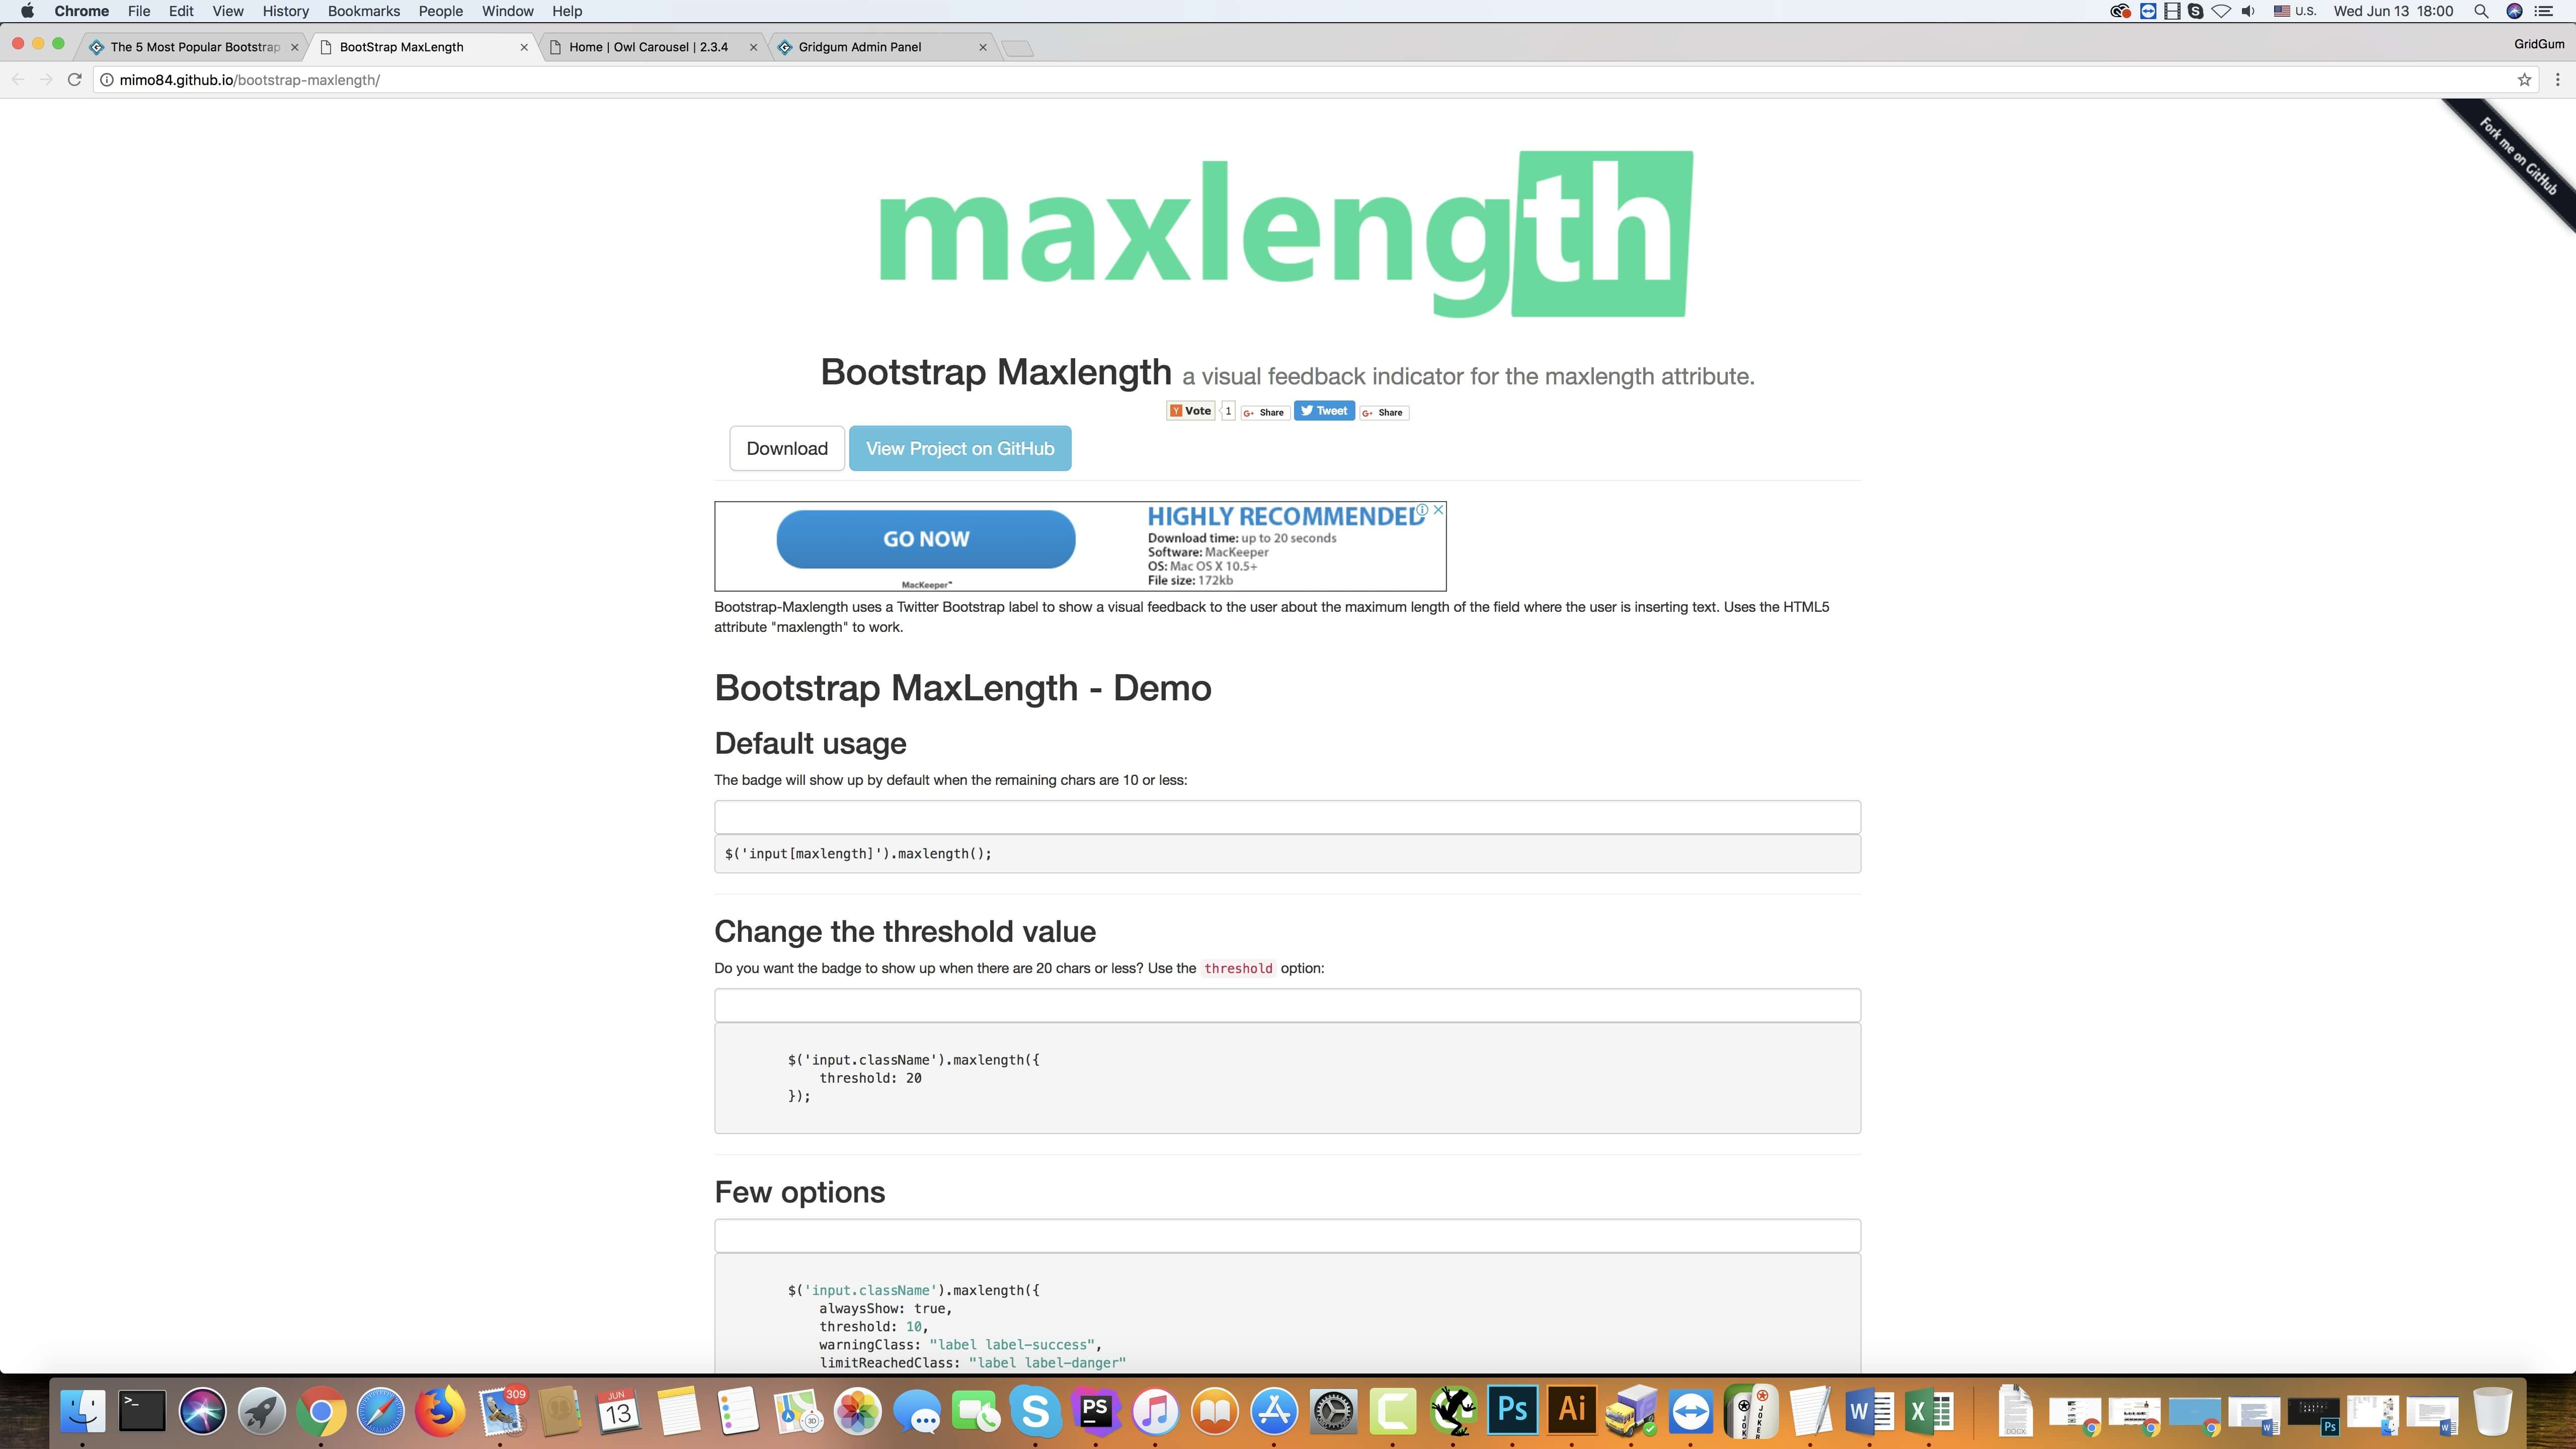 Bootstrap Maxlength